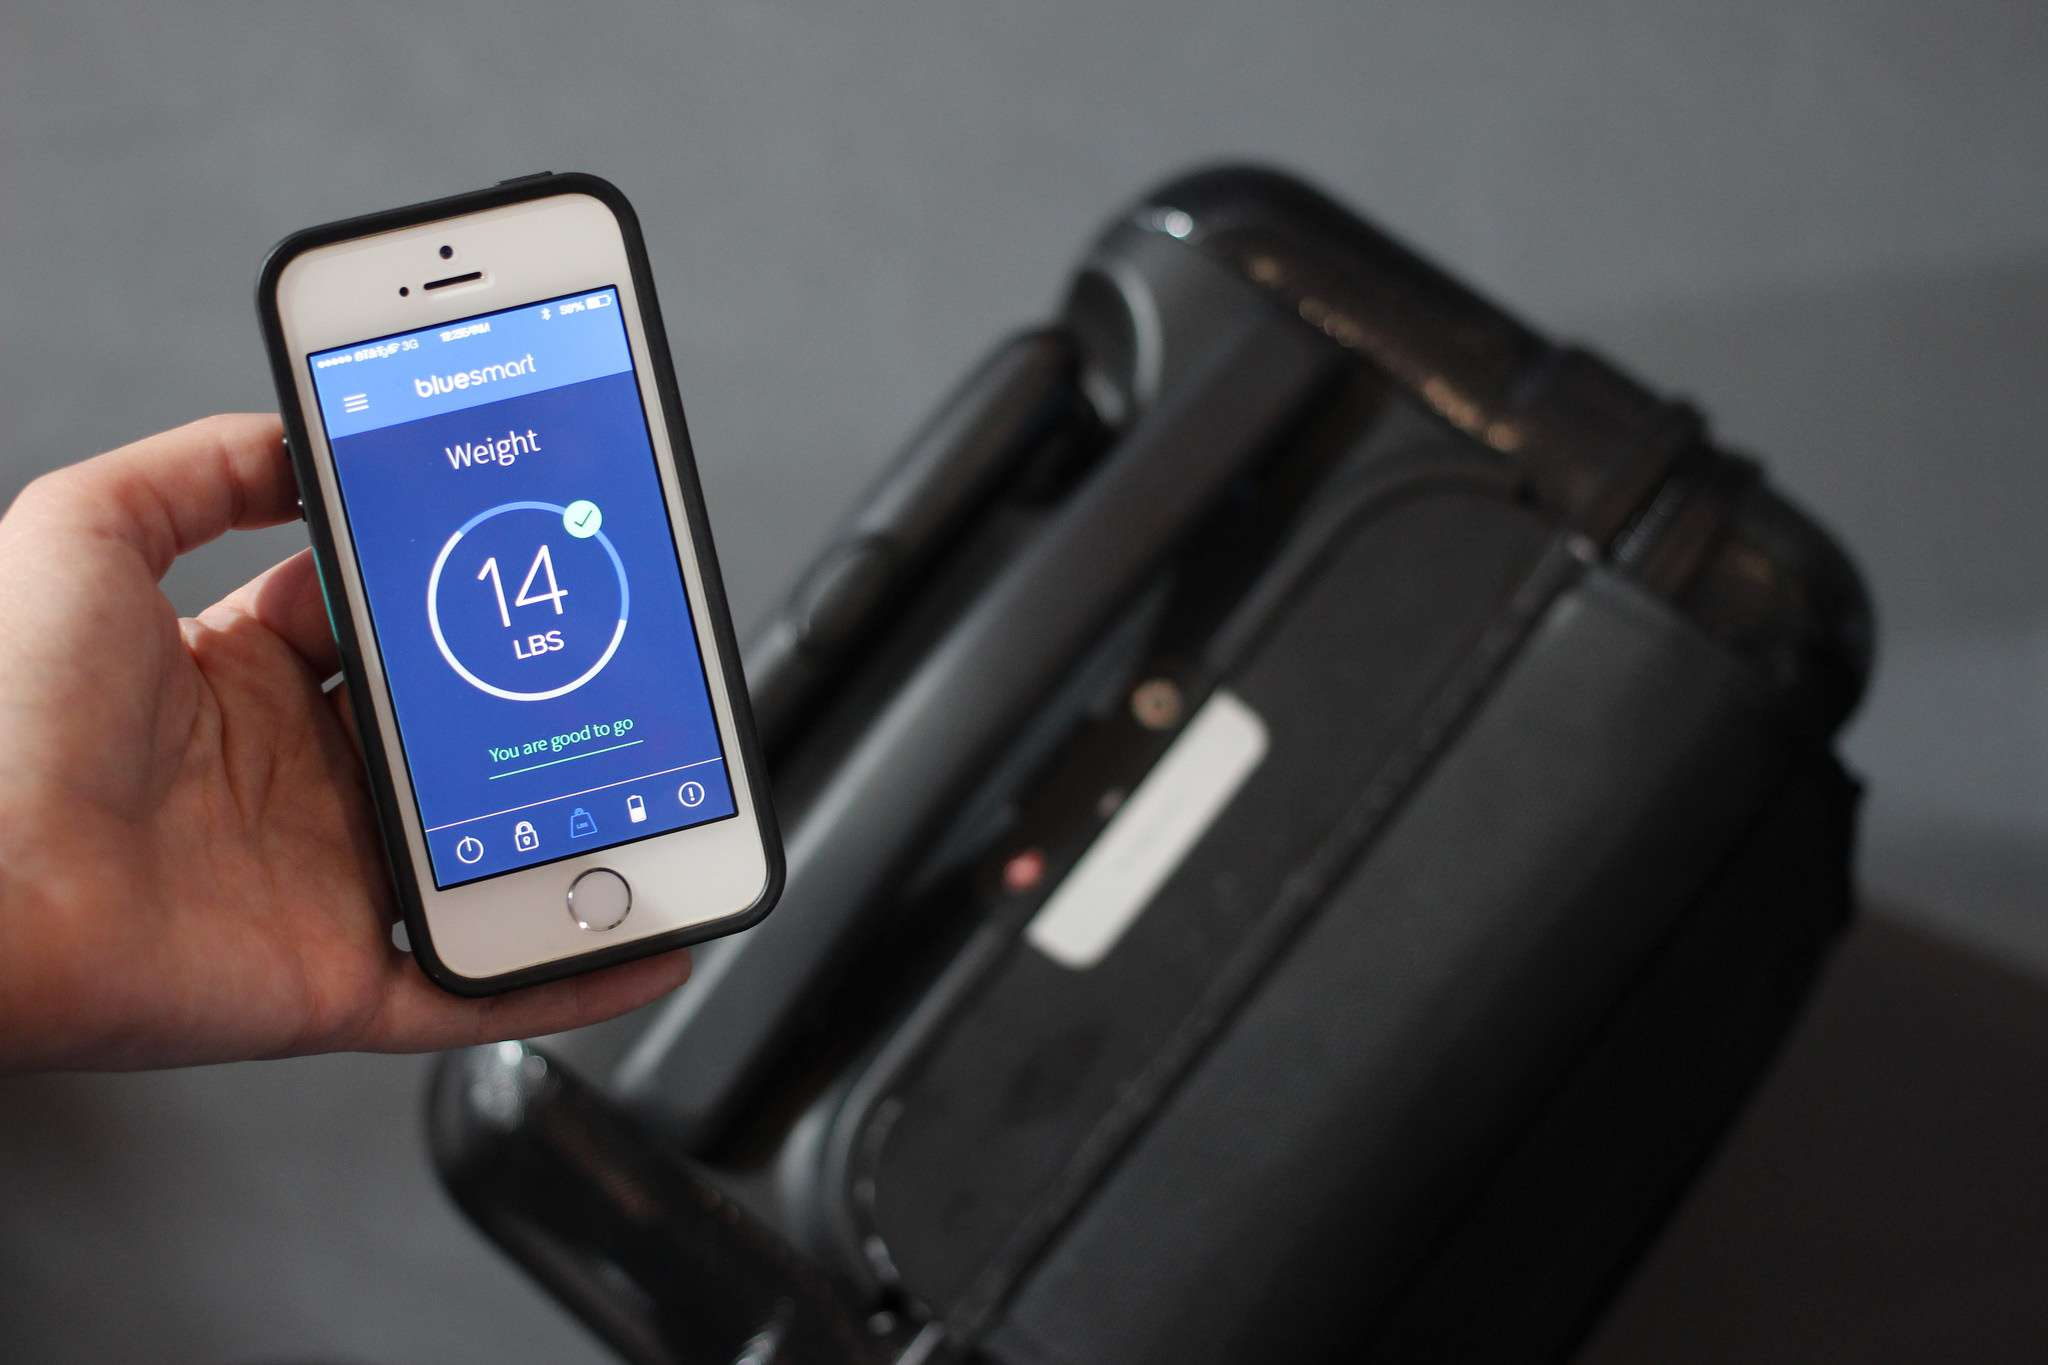 Smart luggage is one way travelers can track their bags between destinations.